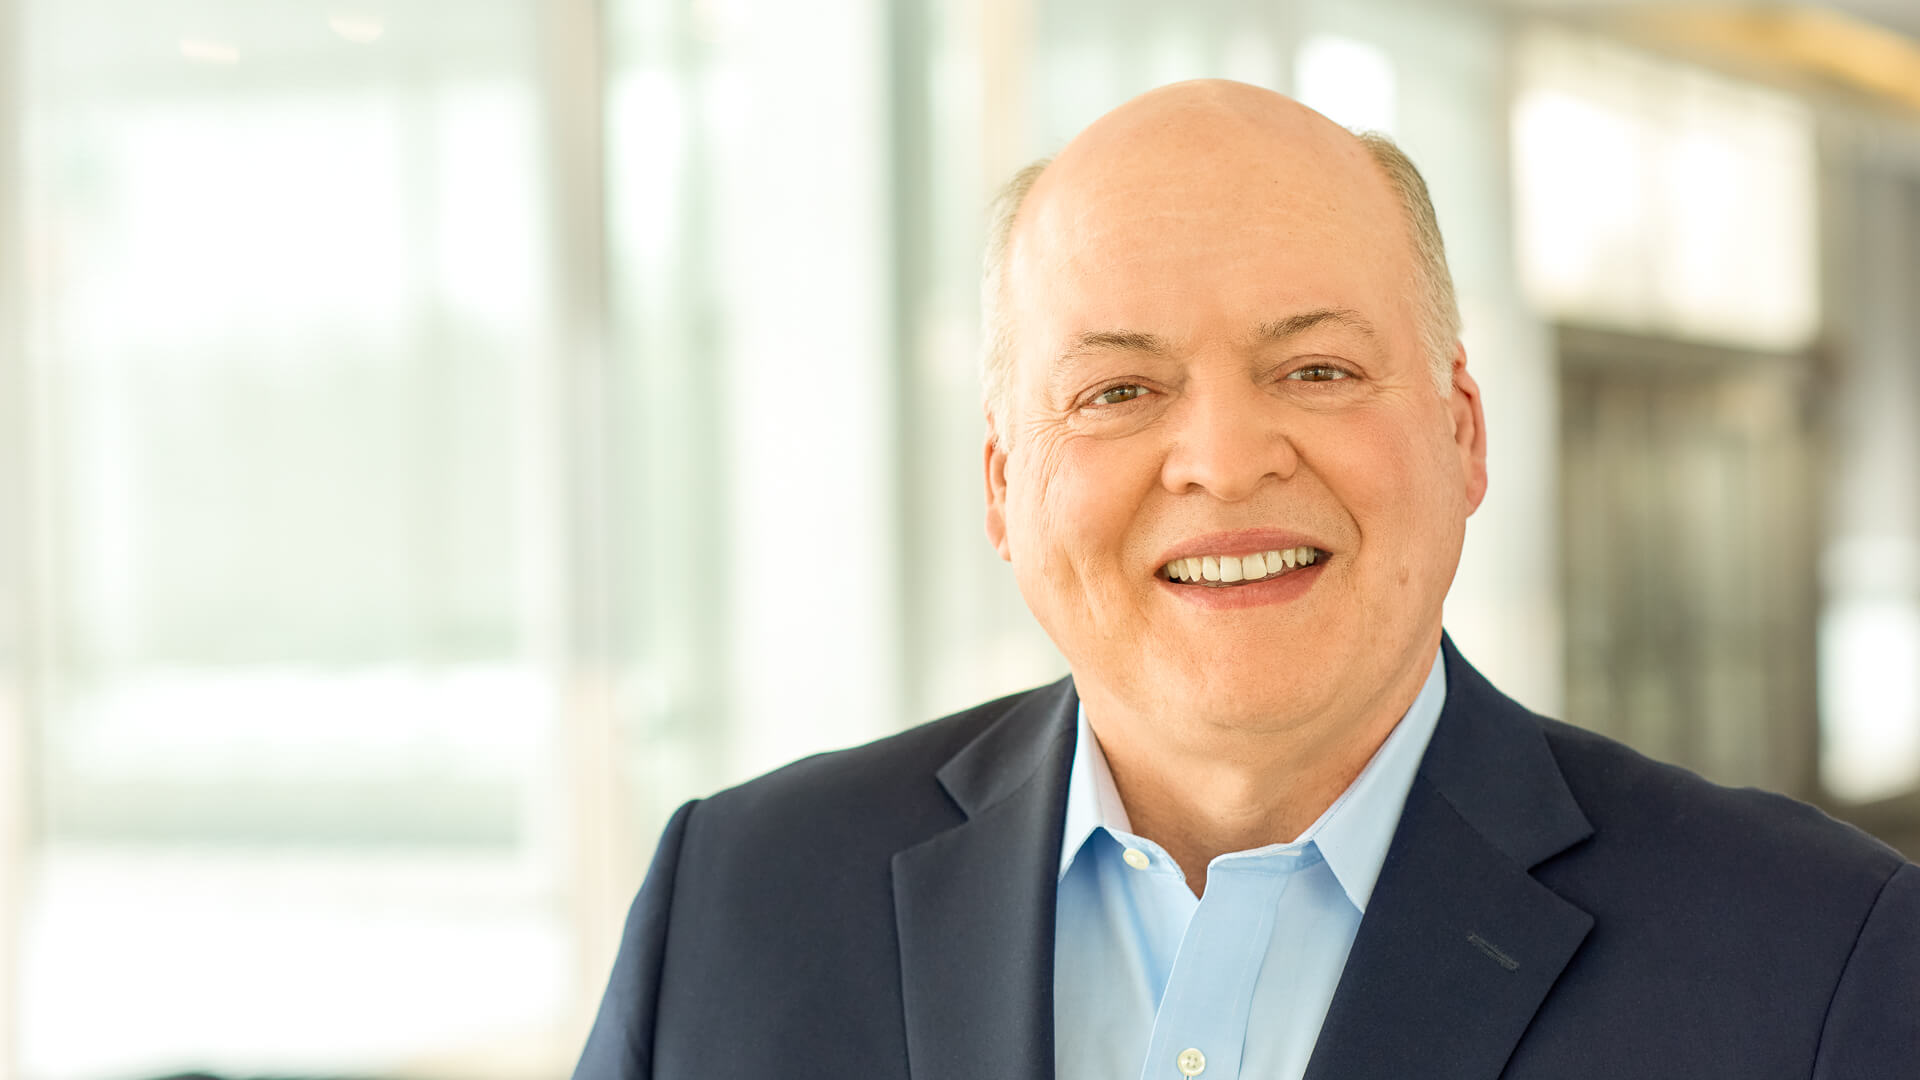 President and Chief Executive Officer, Ford Motor Company Jim Hackett